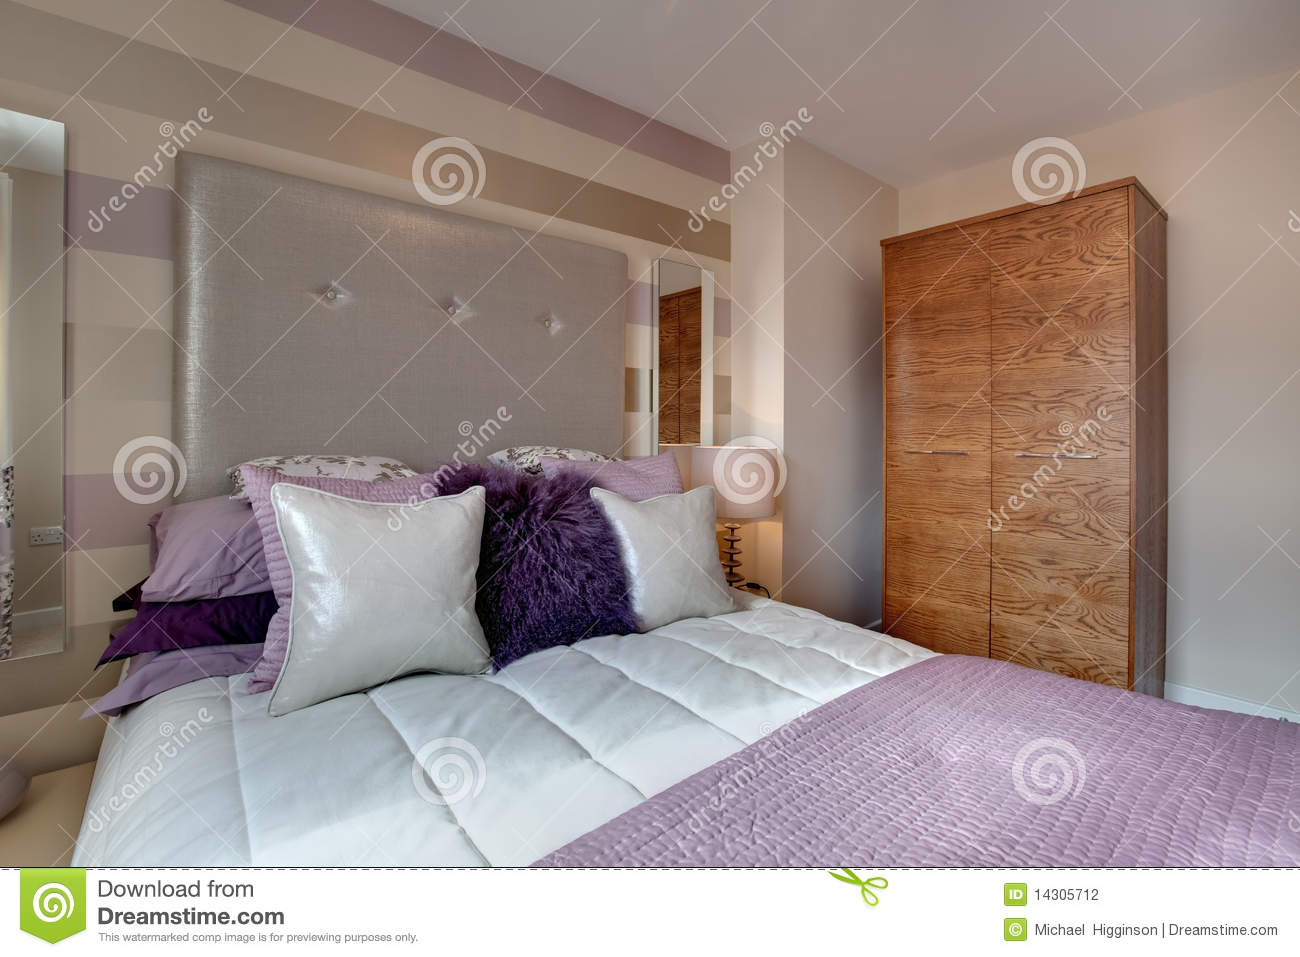 Chambre coucher moderne opulente photographie stock for Chambre coucher moderne